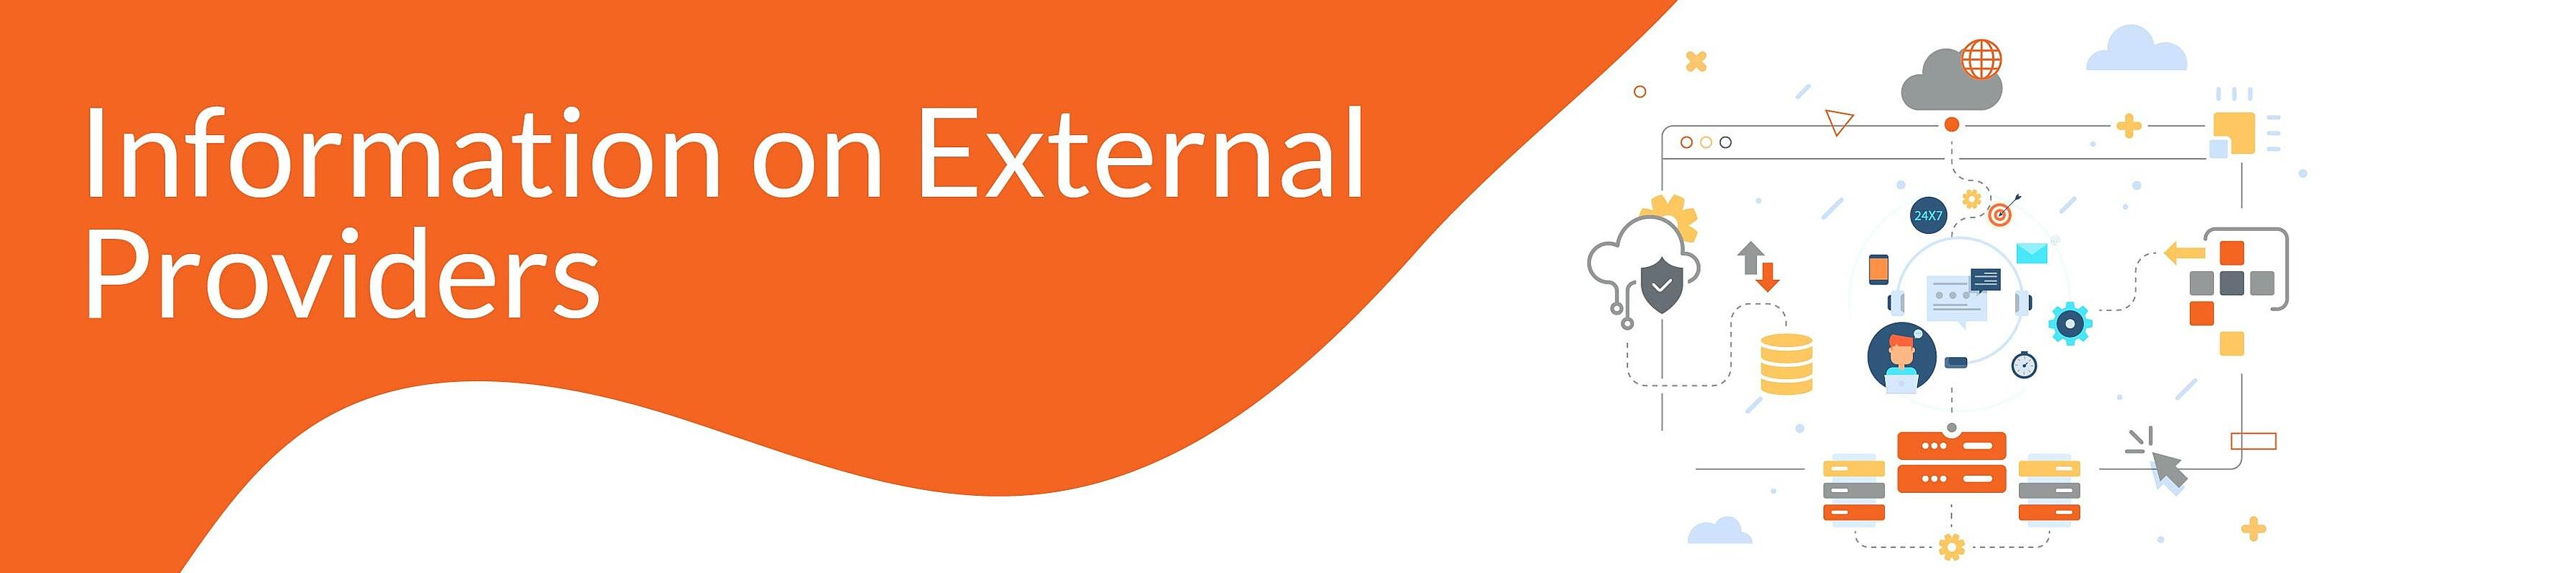 ISO 9001 Clause 8.4 Information on external providers